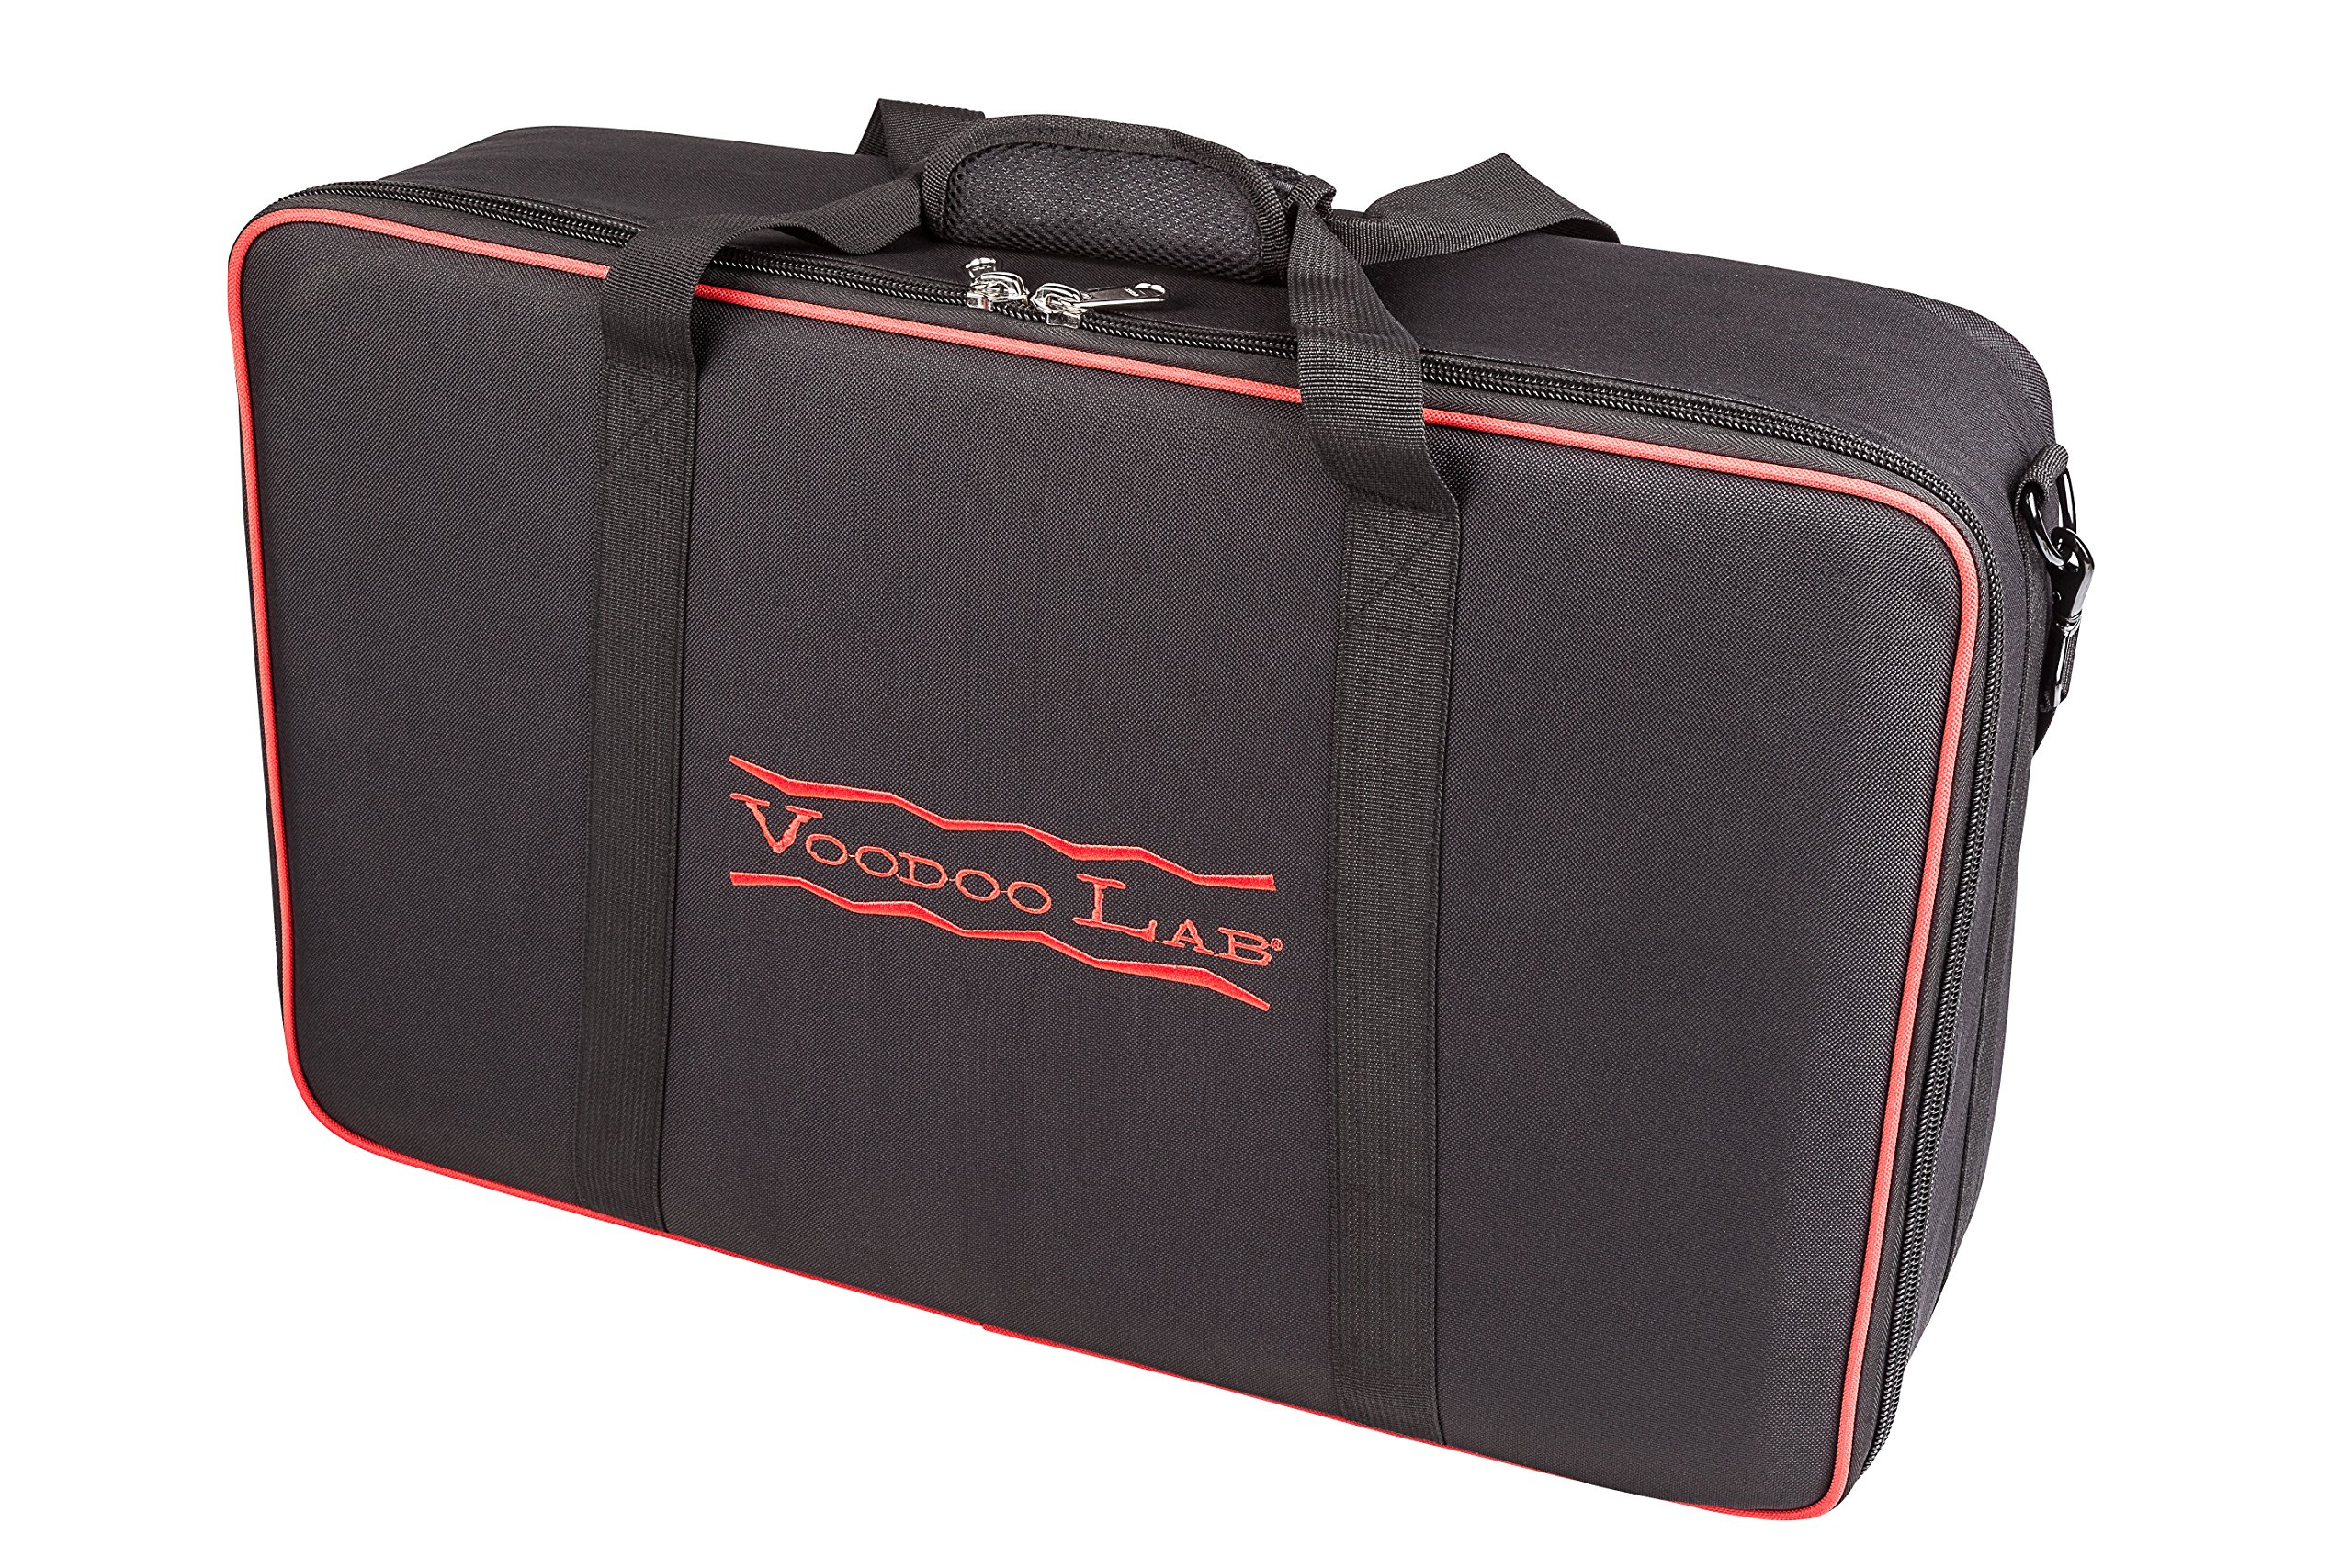 Voodoo Lab Dingbat Medium Pedalboard with Pedal Power 4x4 Power Supply & Bag by Voodoo Lab (Image #12)